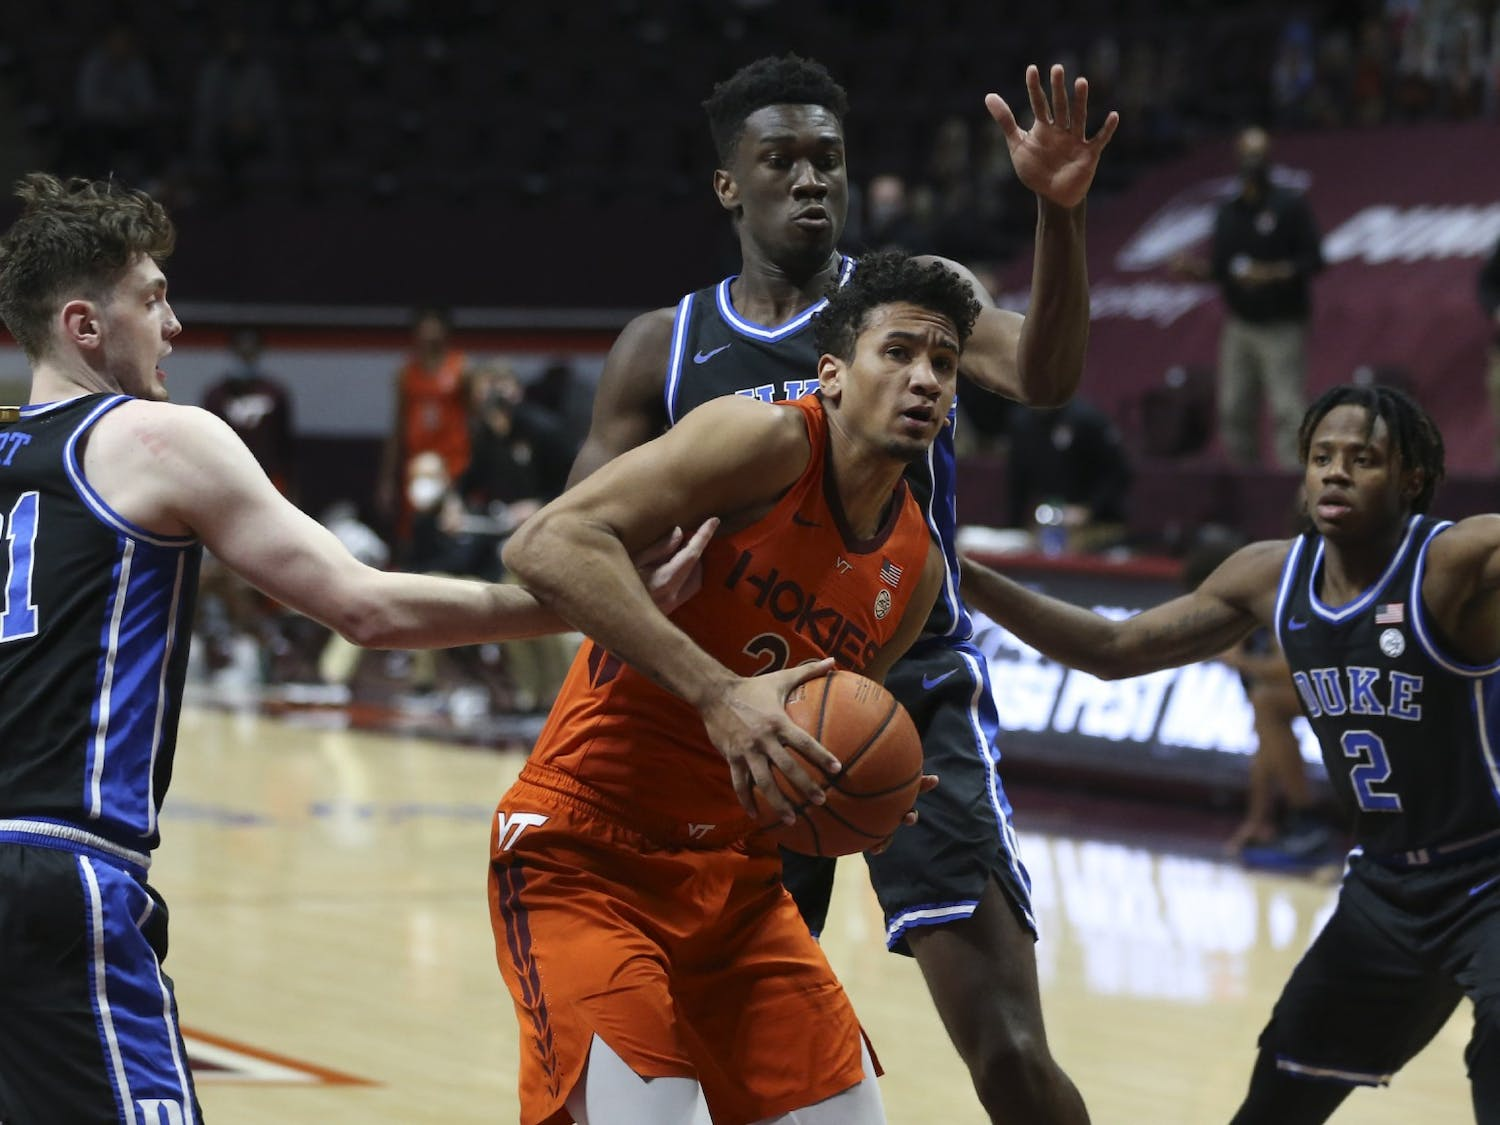 Virginia Tech's Keve Aluma (22) is surrounded by Duke defenders, from left, Matthew Hurt (21)  Mark Williams (15) and DJ Steward (2) in the first half of an NCAA college basketball game in Blacksburg, Va., Tuesday January12 2021. (Matt Gentry/The Roanoke Times via AP, Pool)